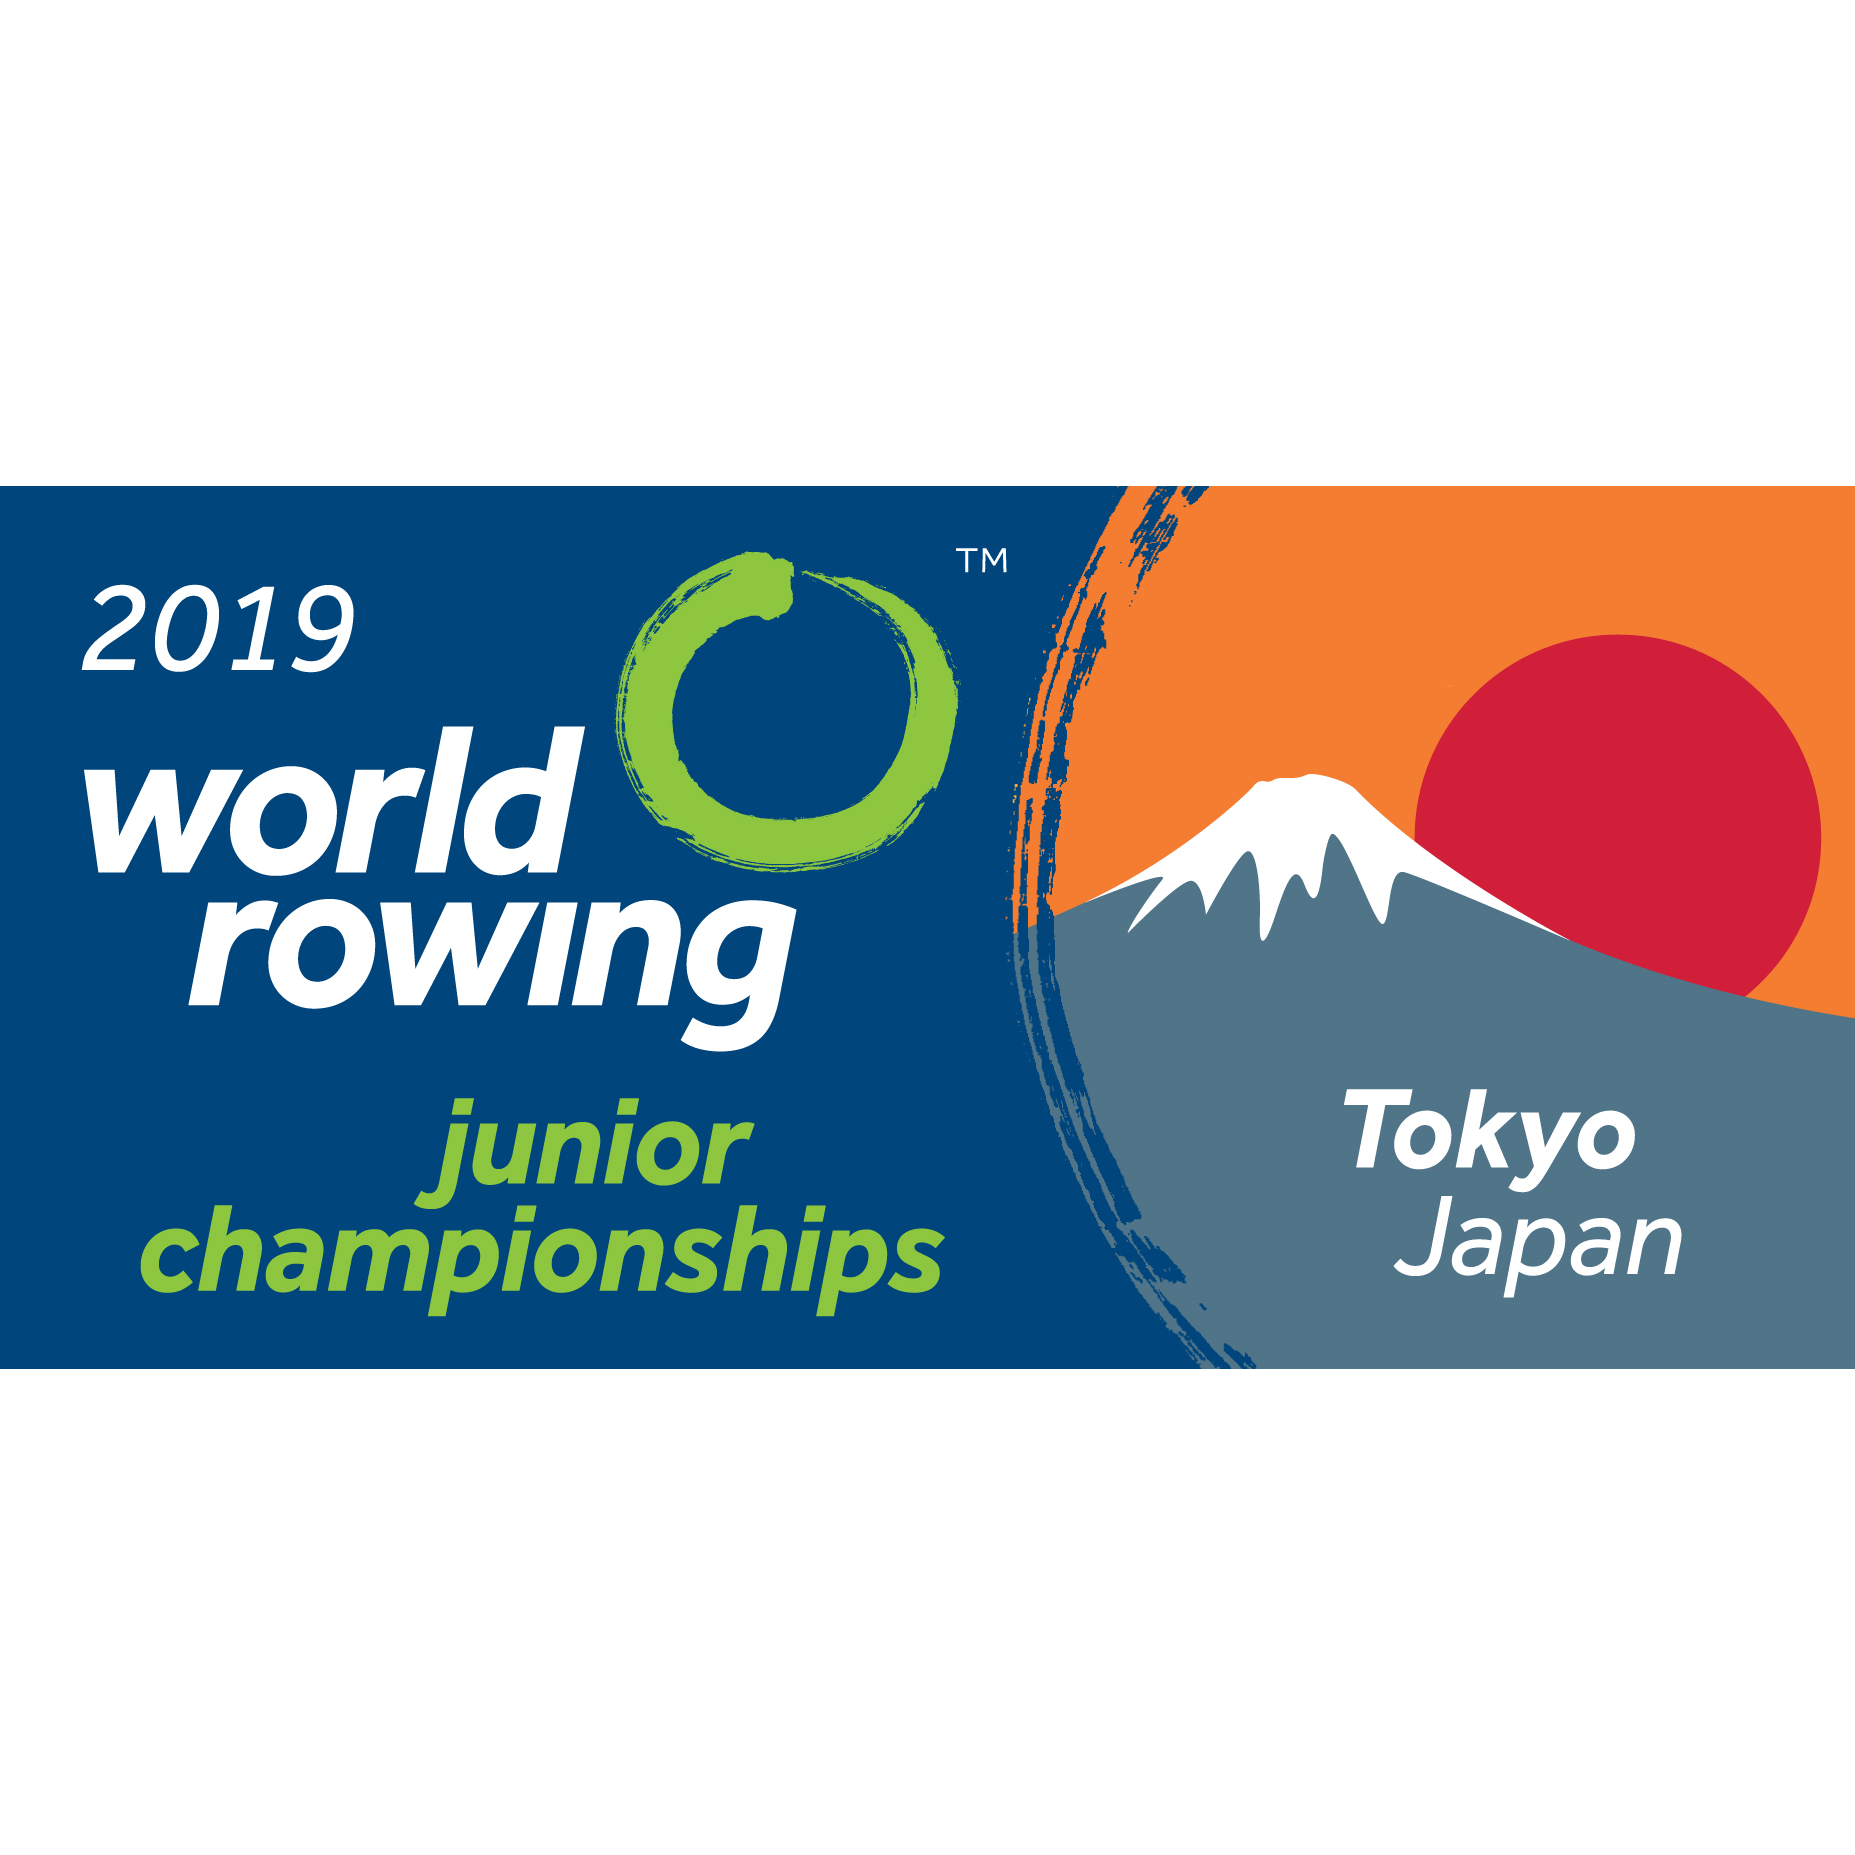 2019 World Rowing Junior Championships